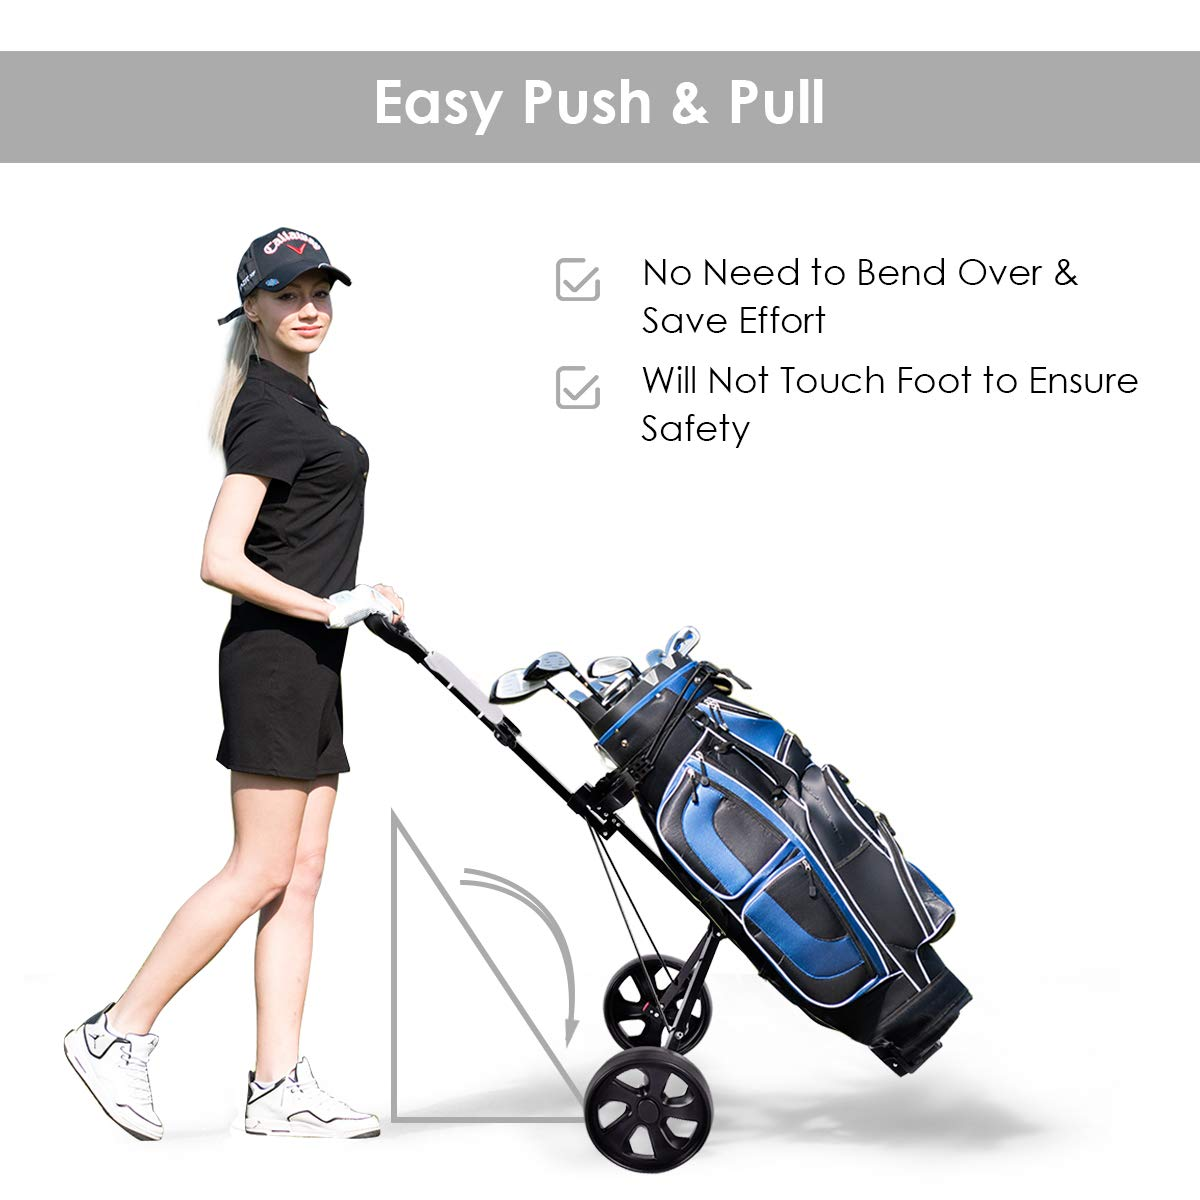 COSTWAY Golf Cart Foldable 2 Wheel Push Pull Cart Trolley by COSTWAY (Image #8)